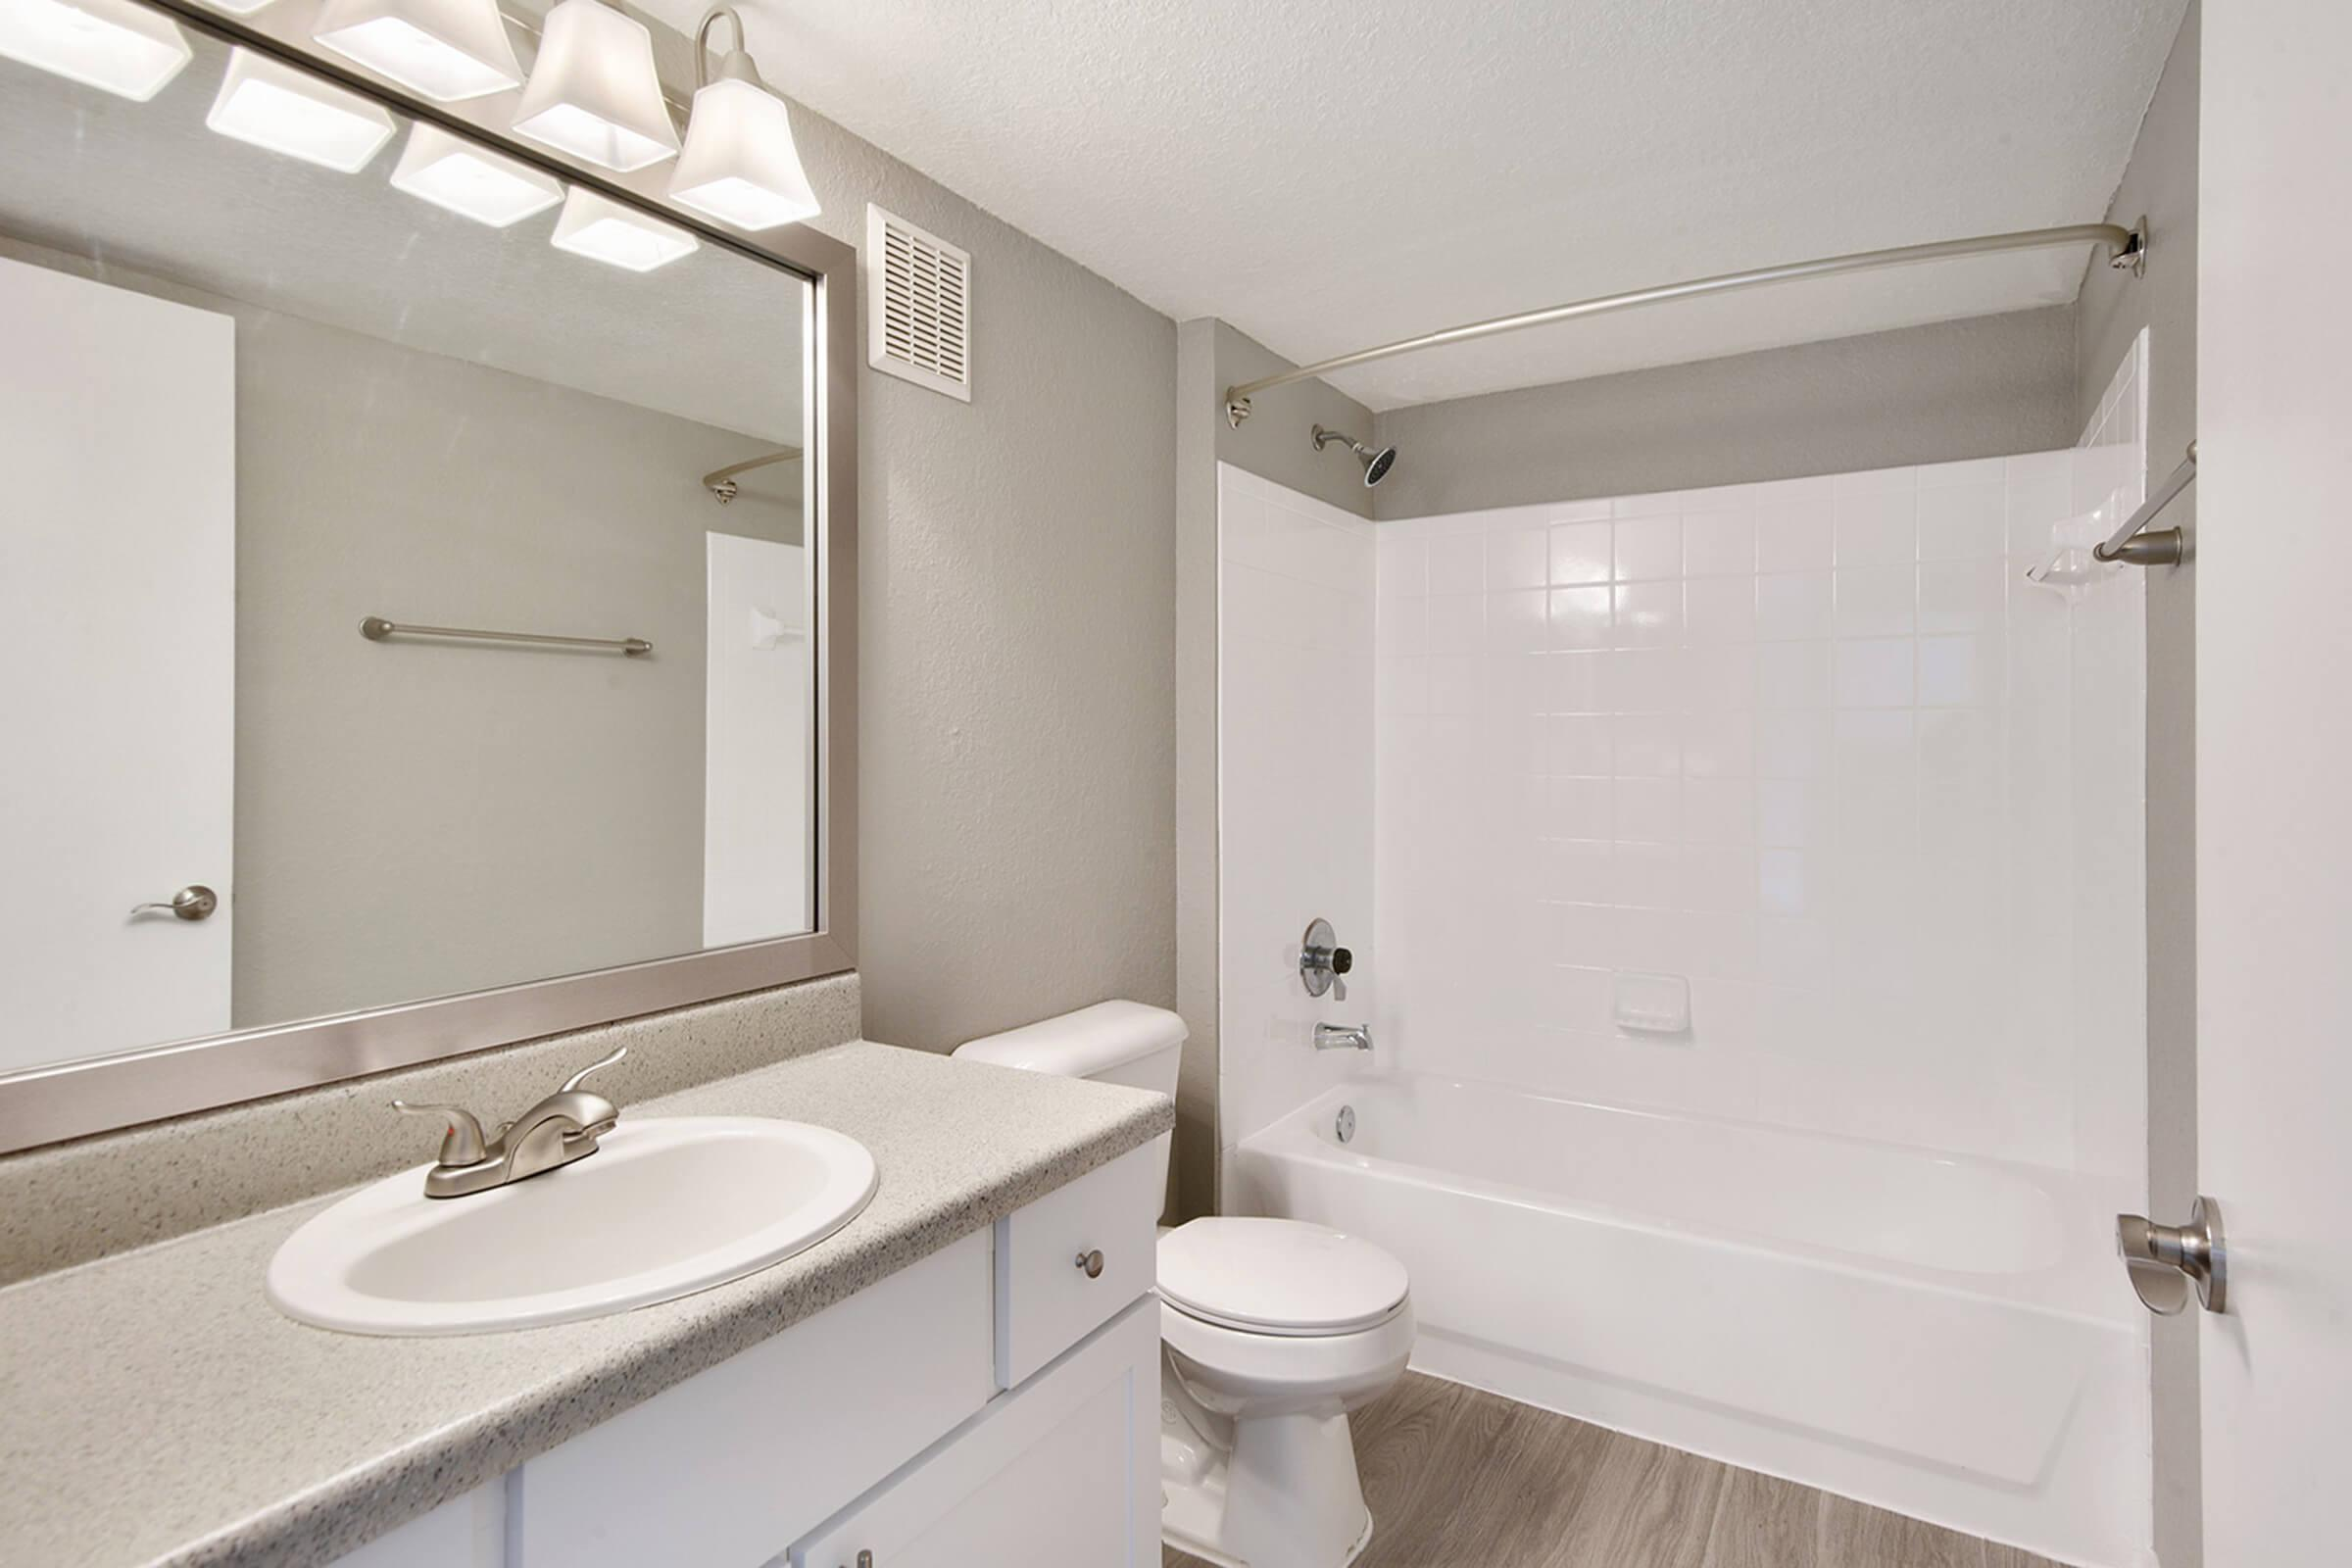 a white sink sitting under a mirror next to a shower